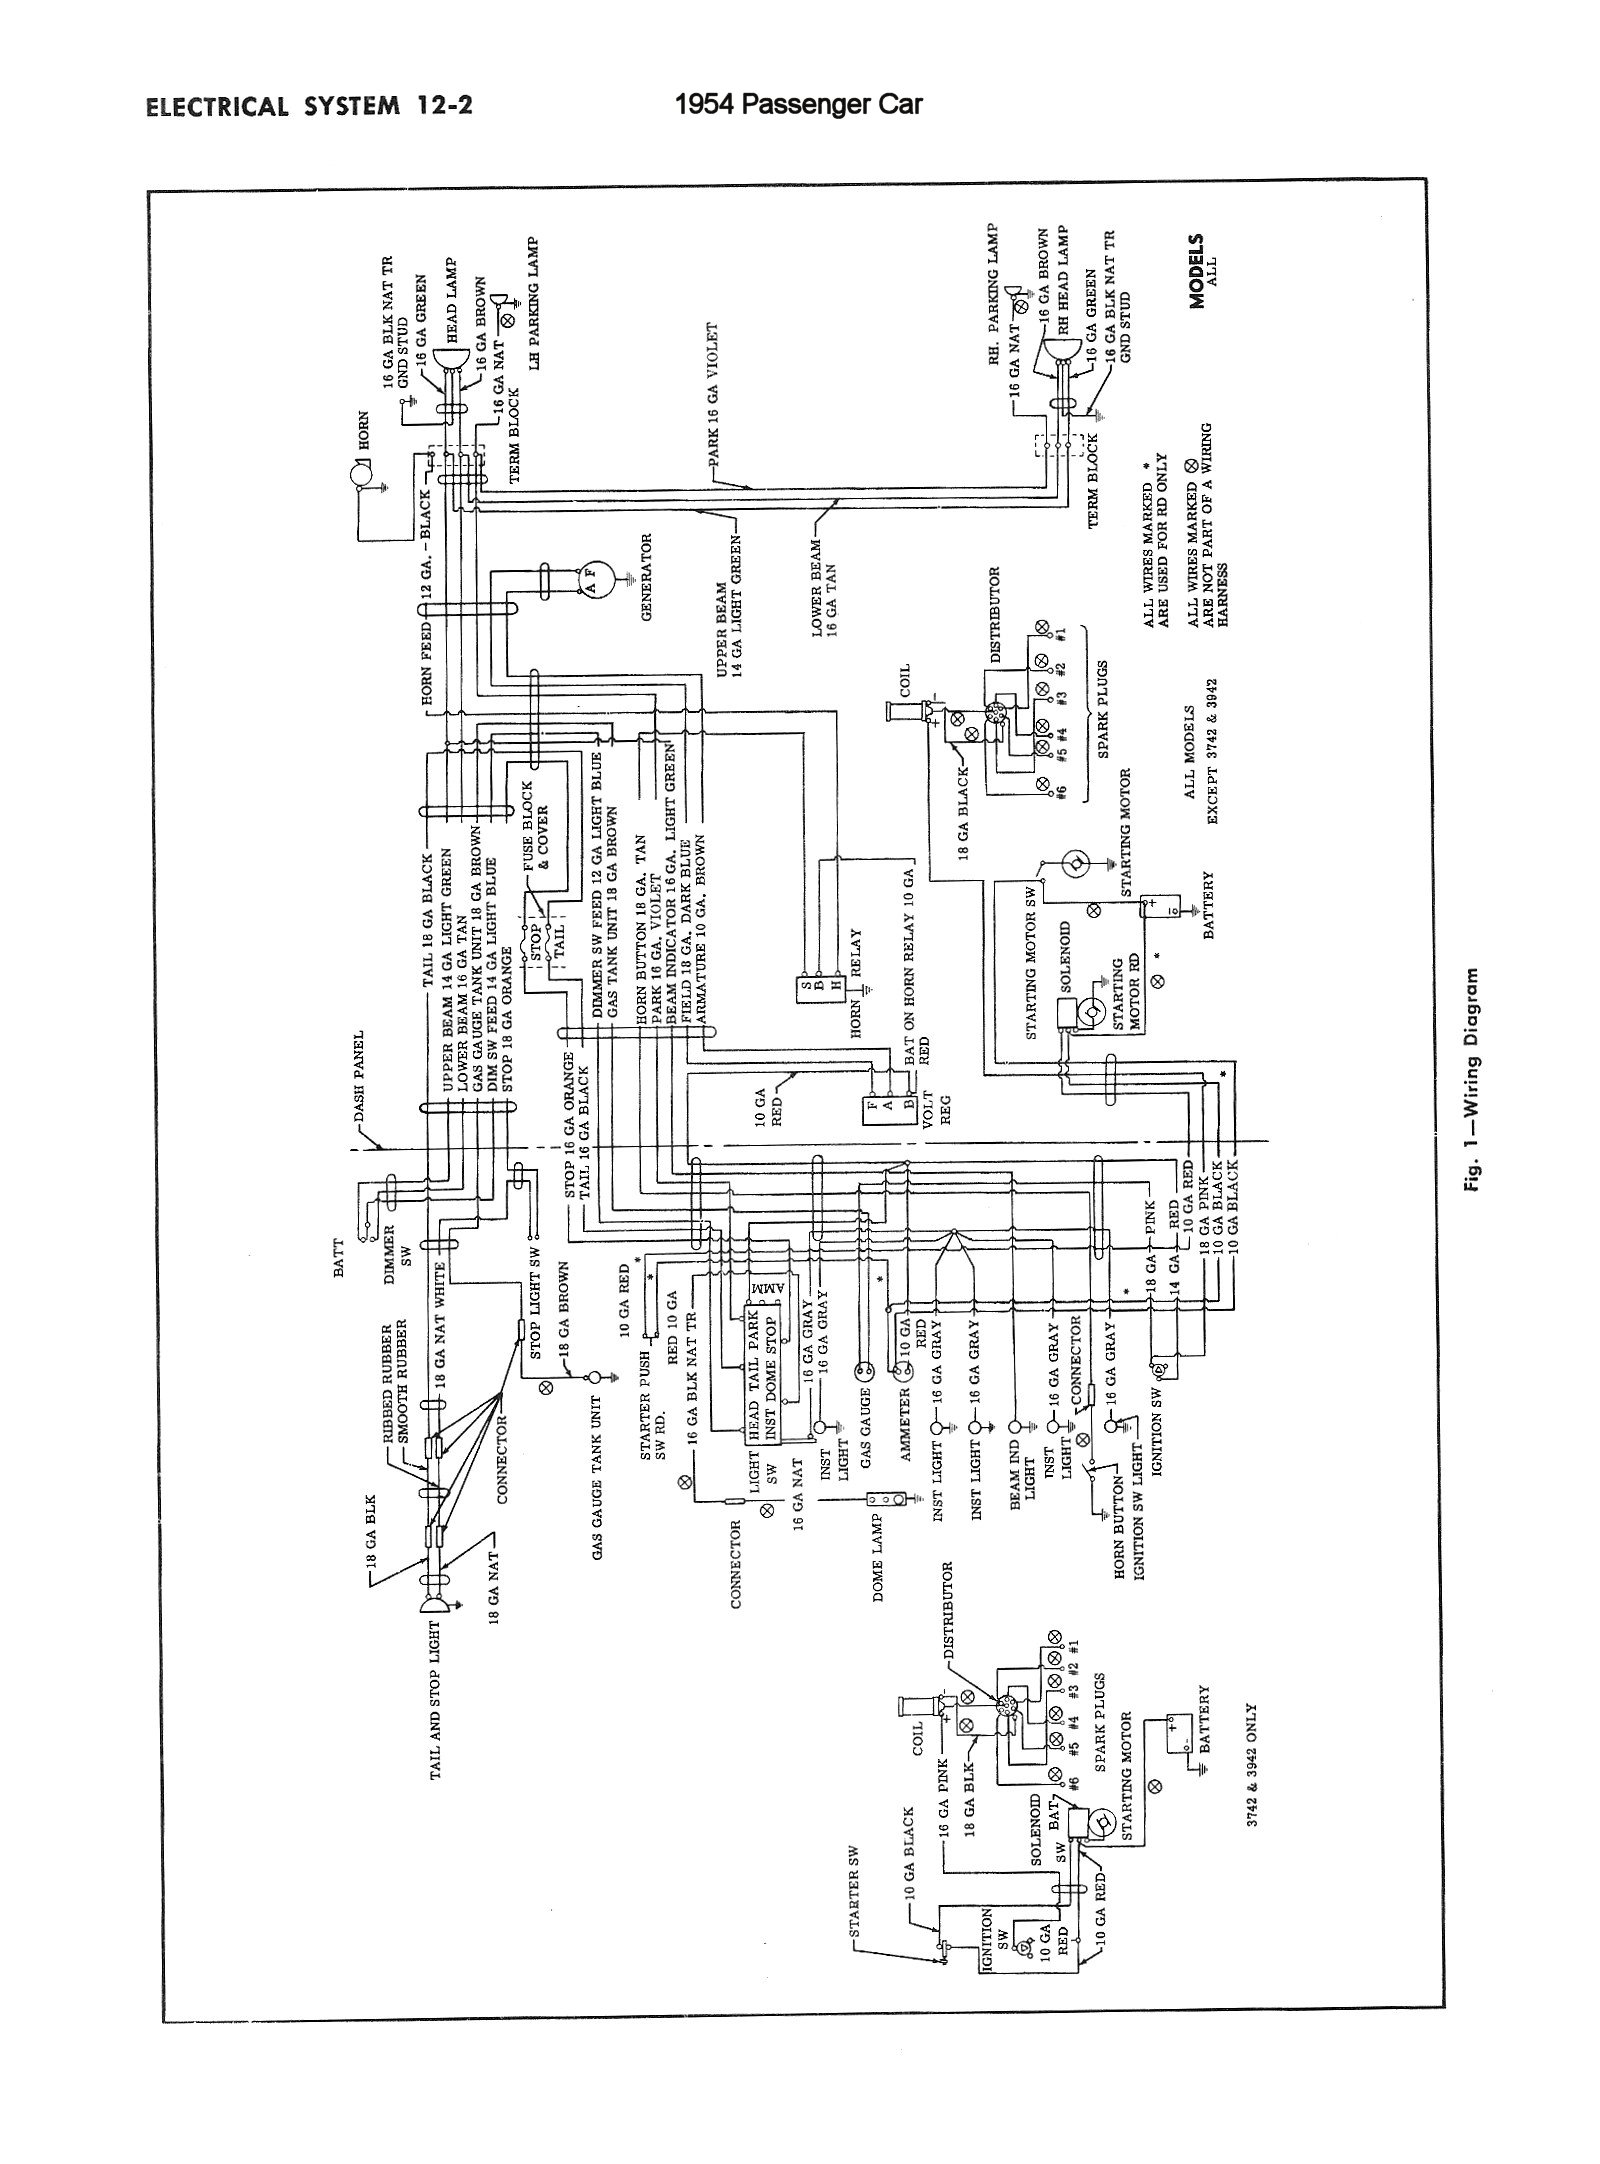 auto diagram 1970 plymouth wiring 1960 chevy truck wire management